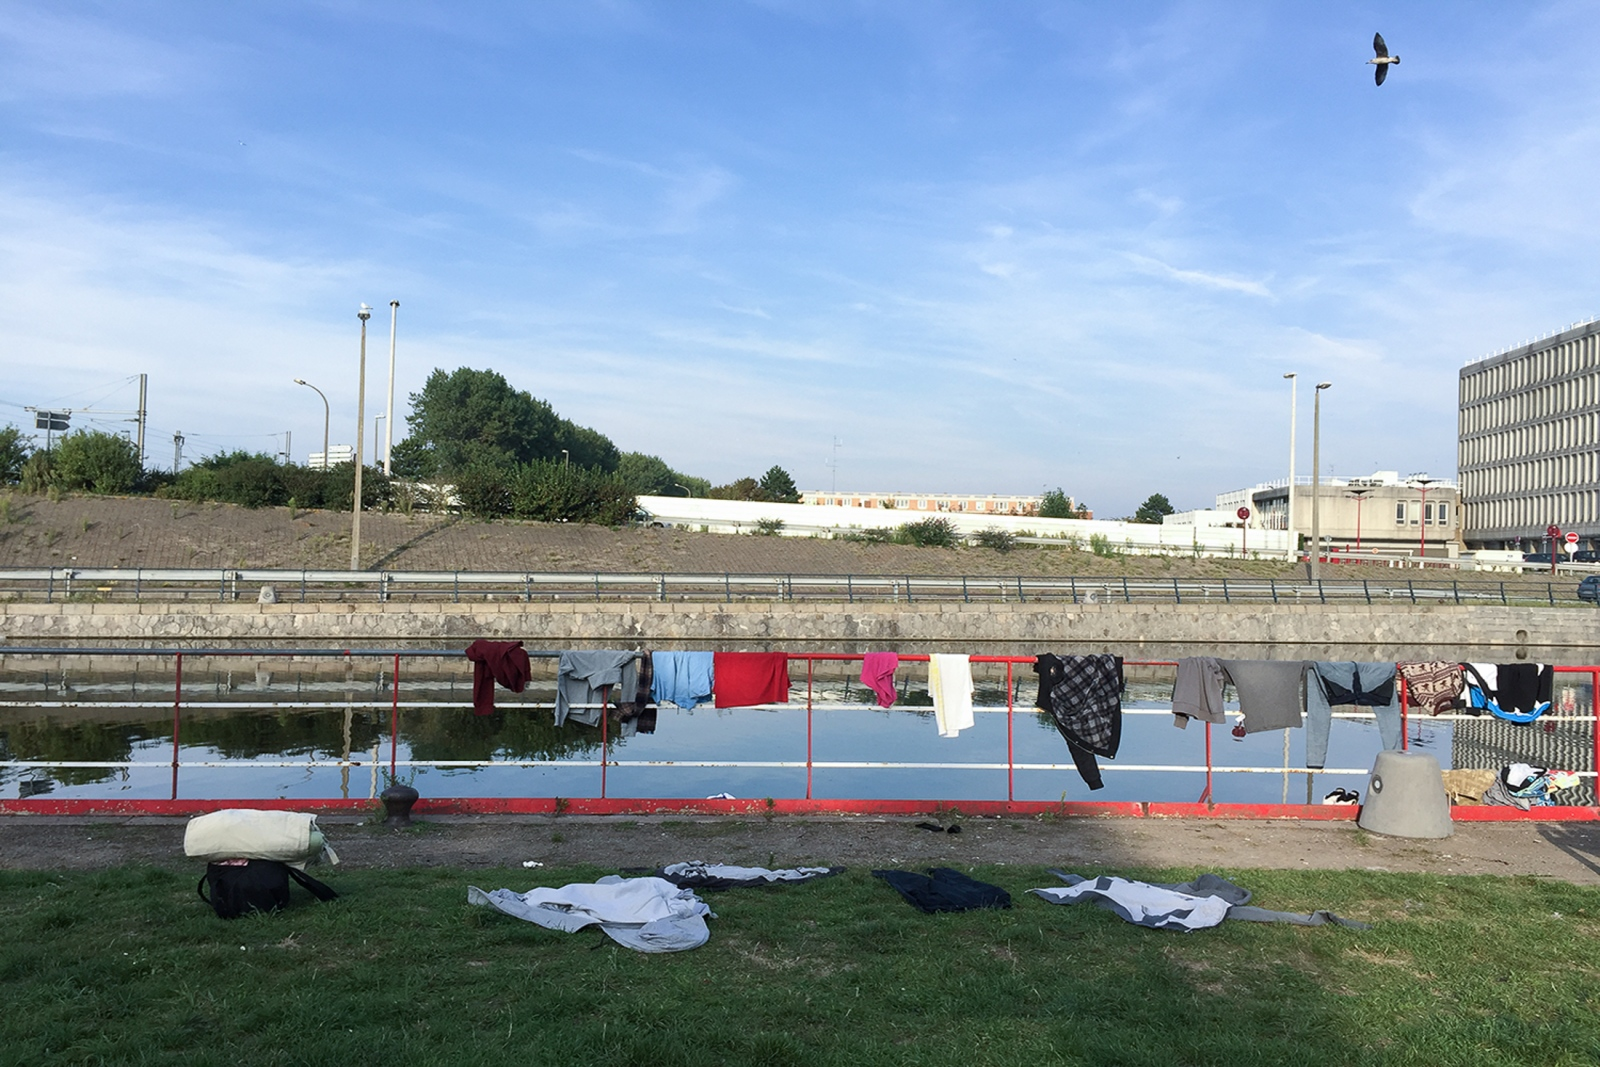 August 28, 2017 - Calais, France. Makeshift laundry. The government has not provided an adequate area where exiled people can properly wash and dry their clothes. Washing of clothes and sleeping bags with clean, hot water is essential for the prevention and cure of skin diseases such as scabies.